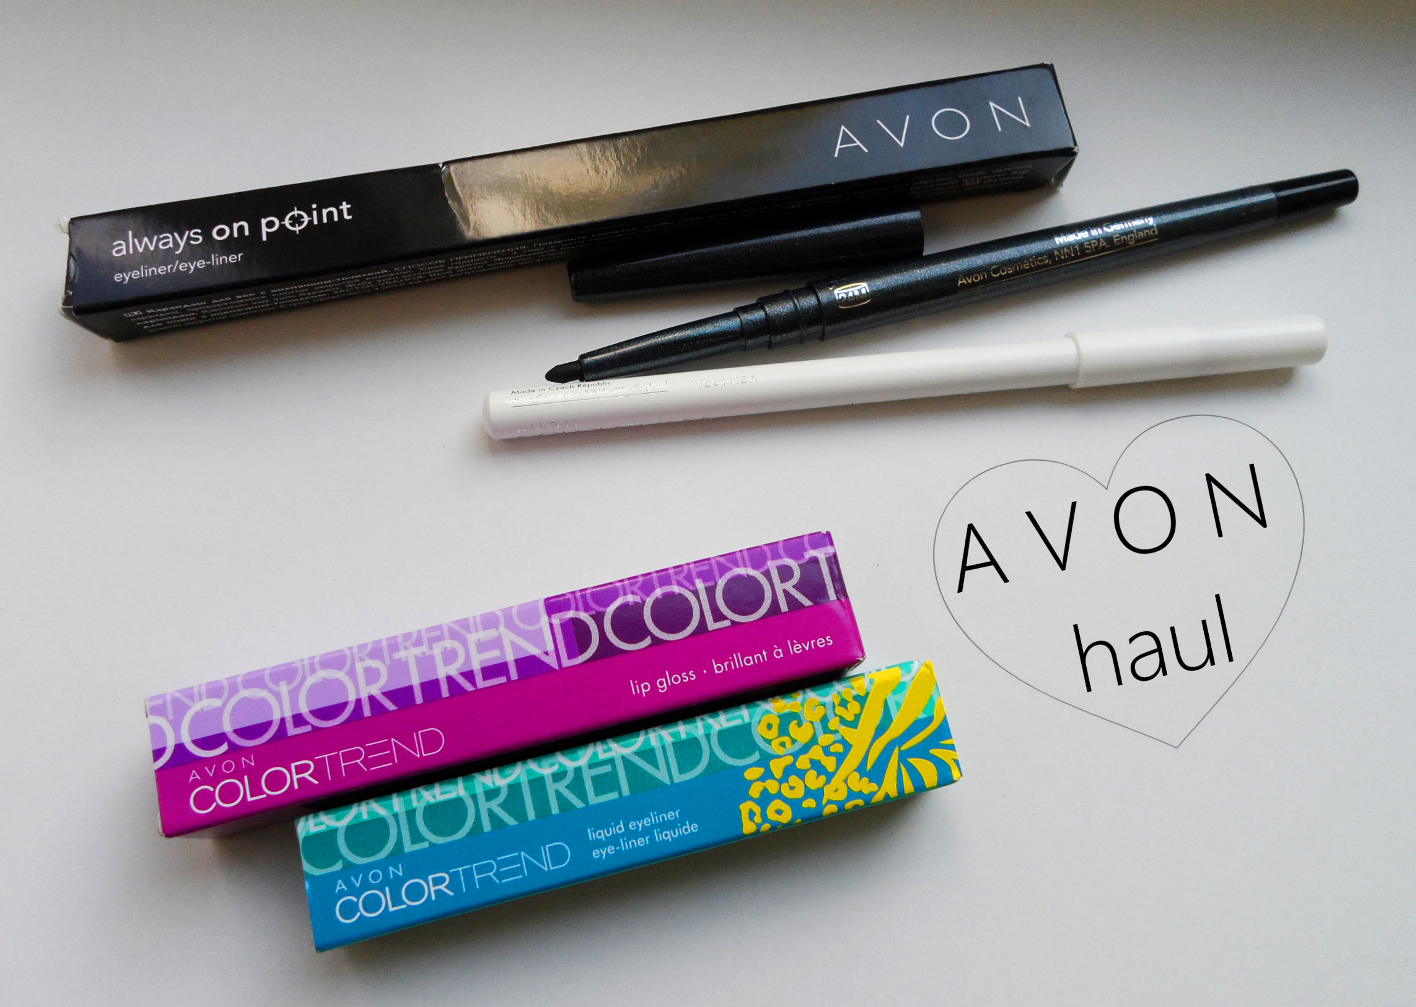 avon color trend cosmetics makeup  review swatches